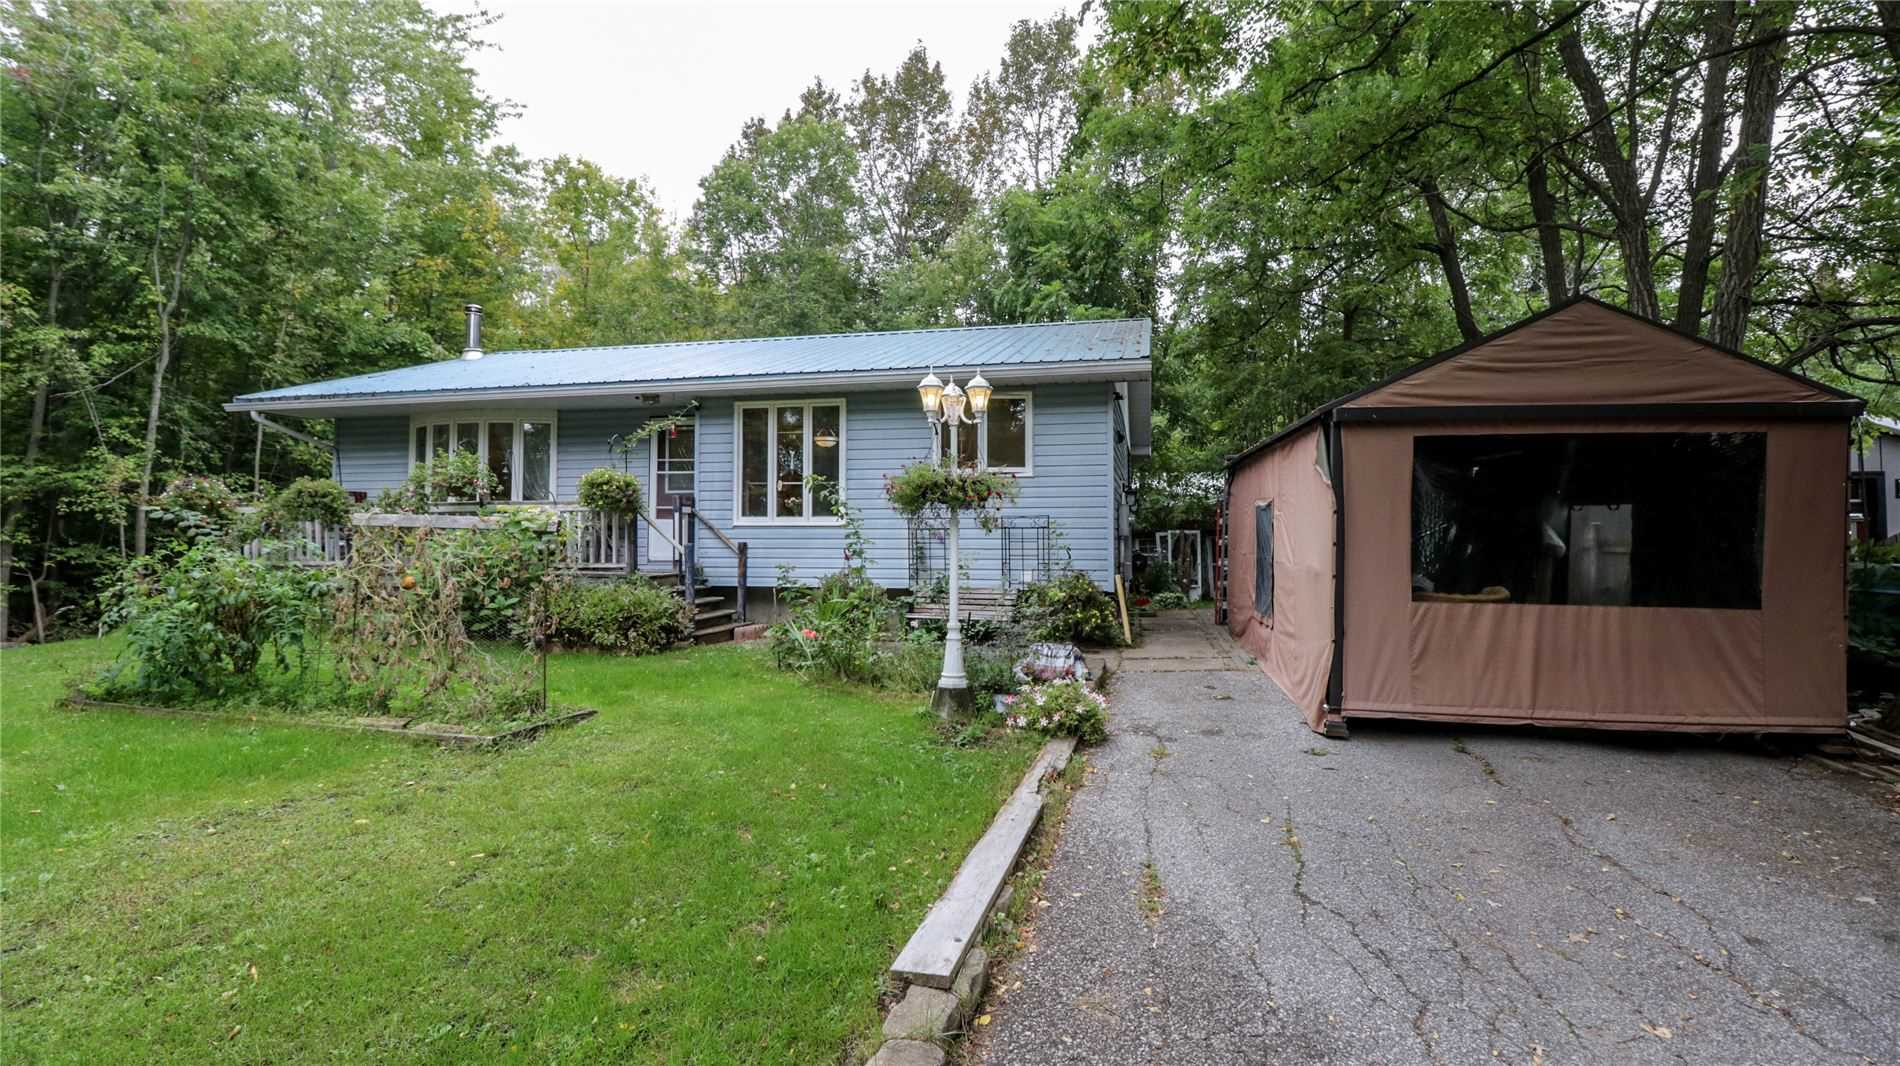 Detached house For Sale In Oro-Medonte